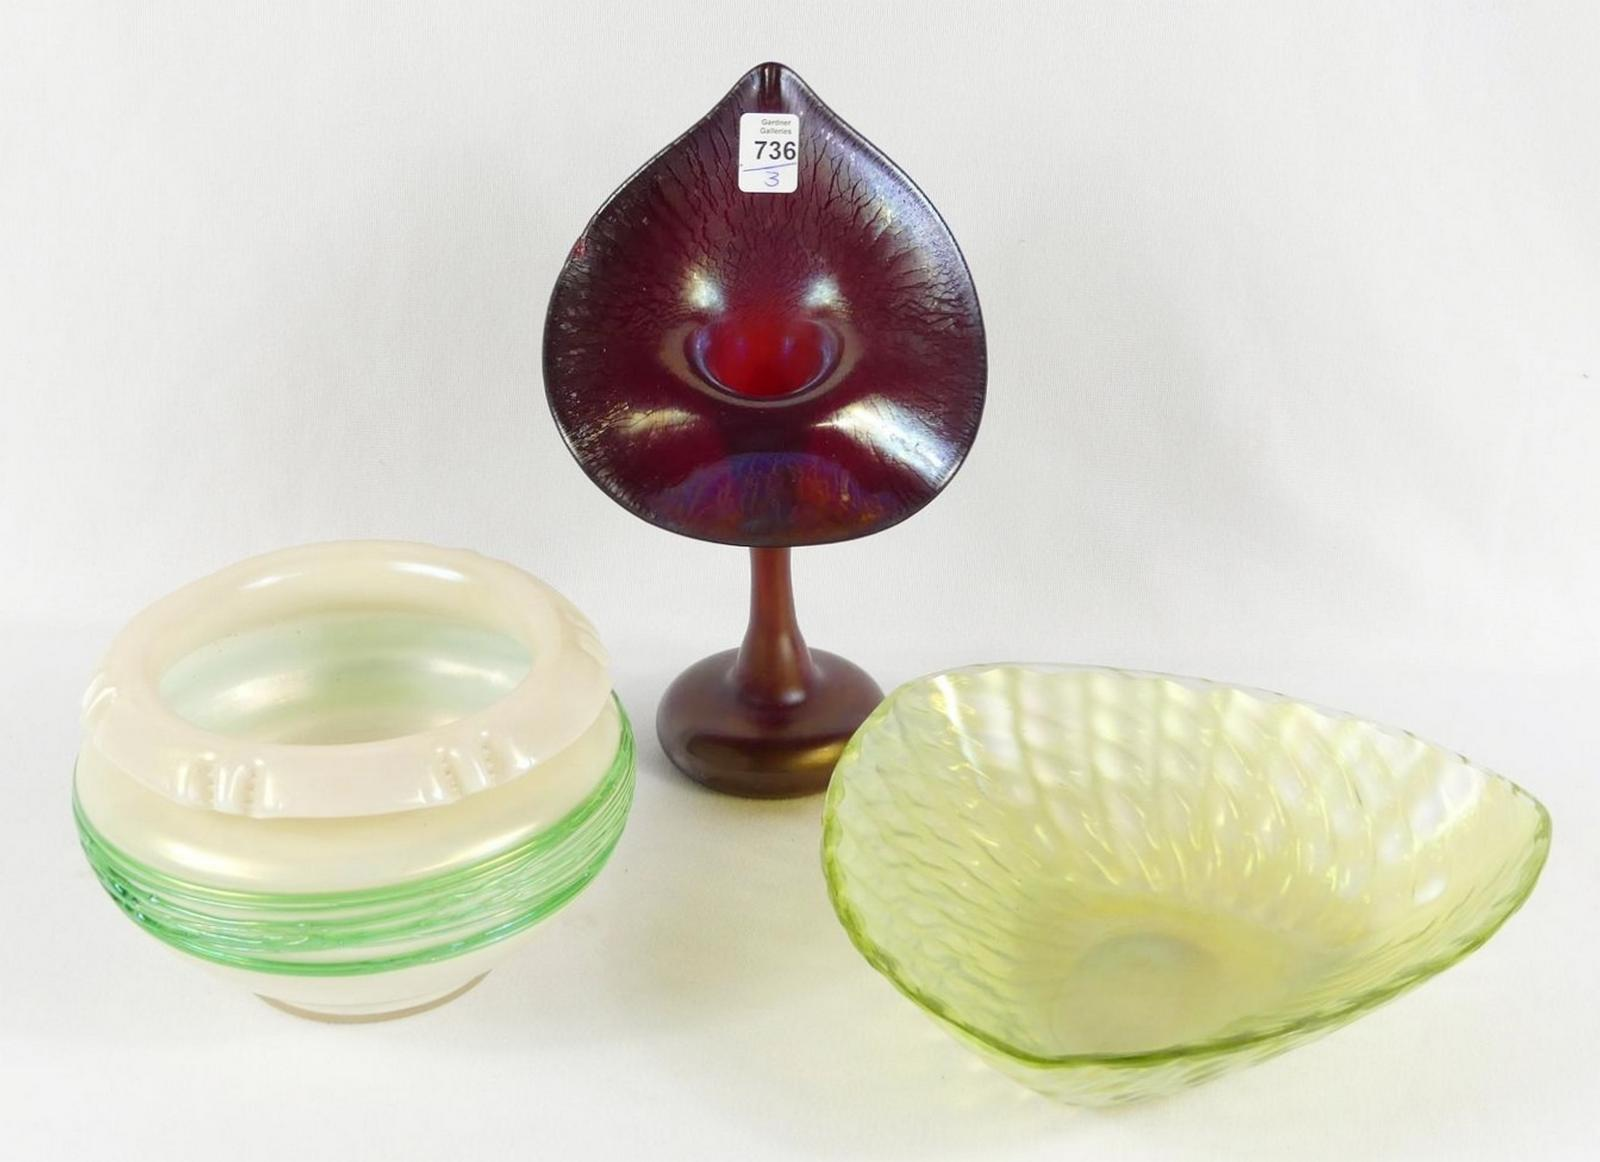 THREE PIECES OF IRIDESCENT GLASS